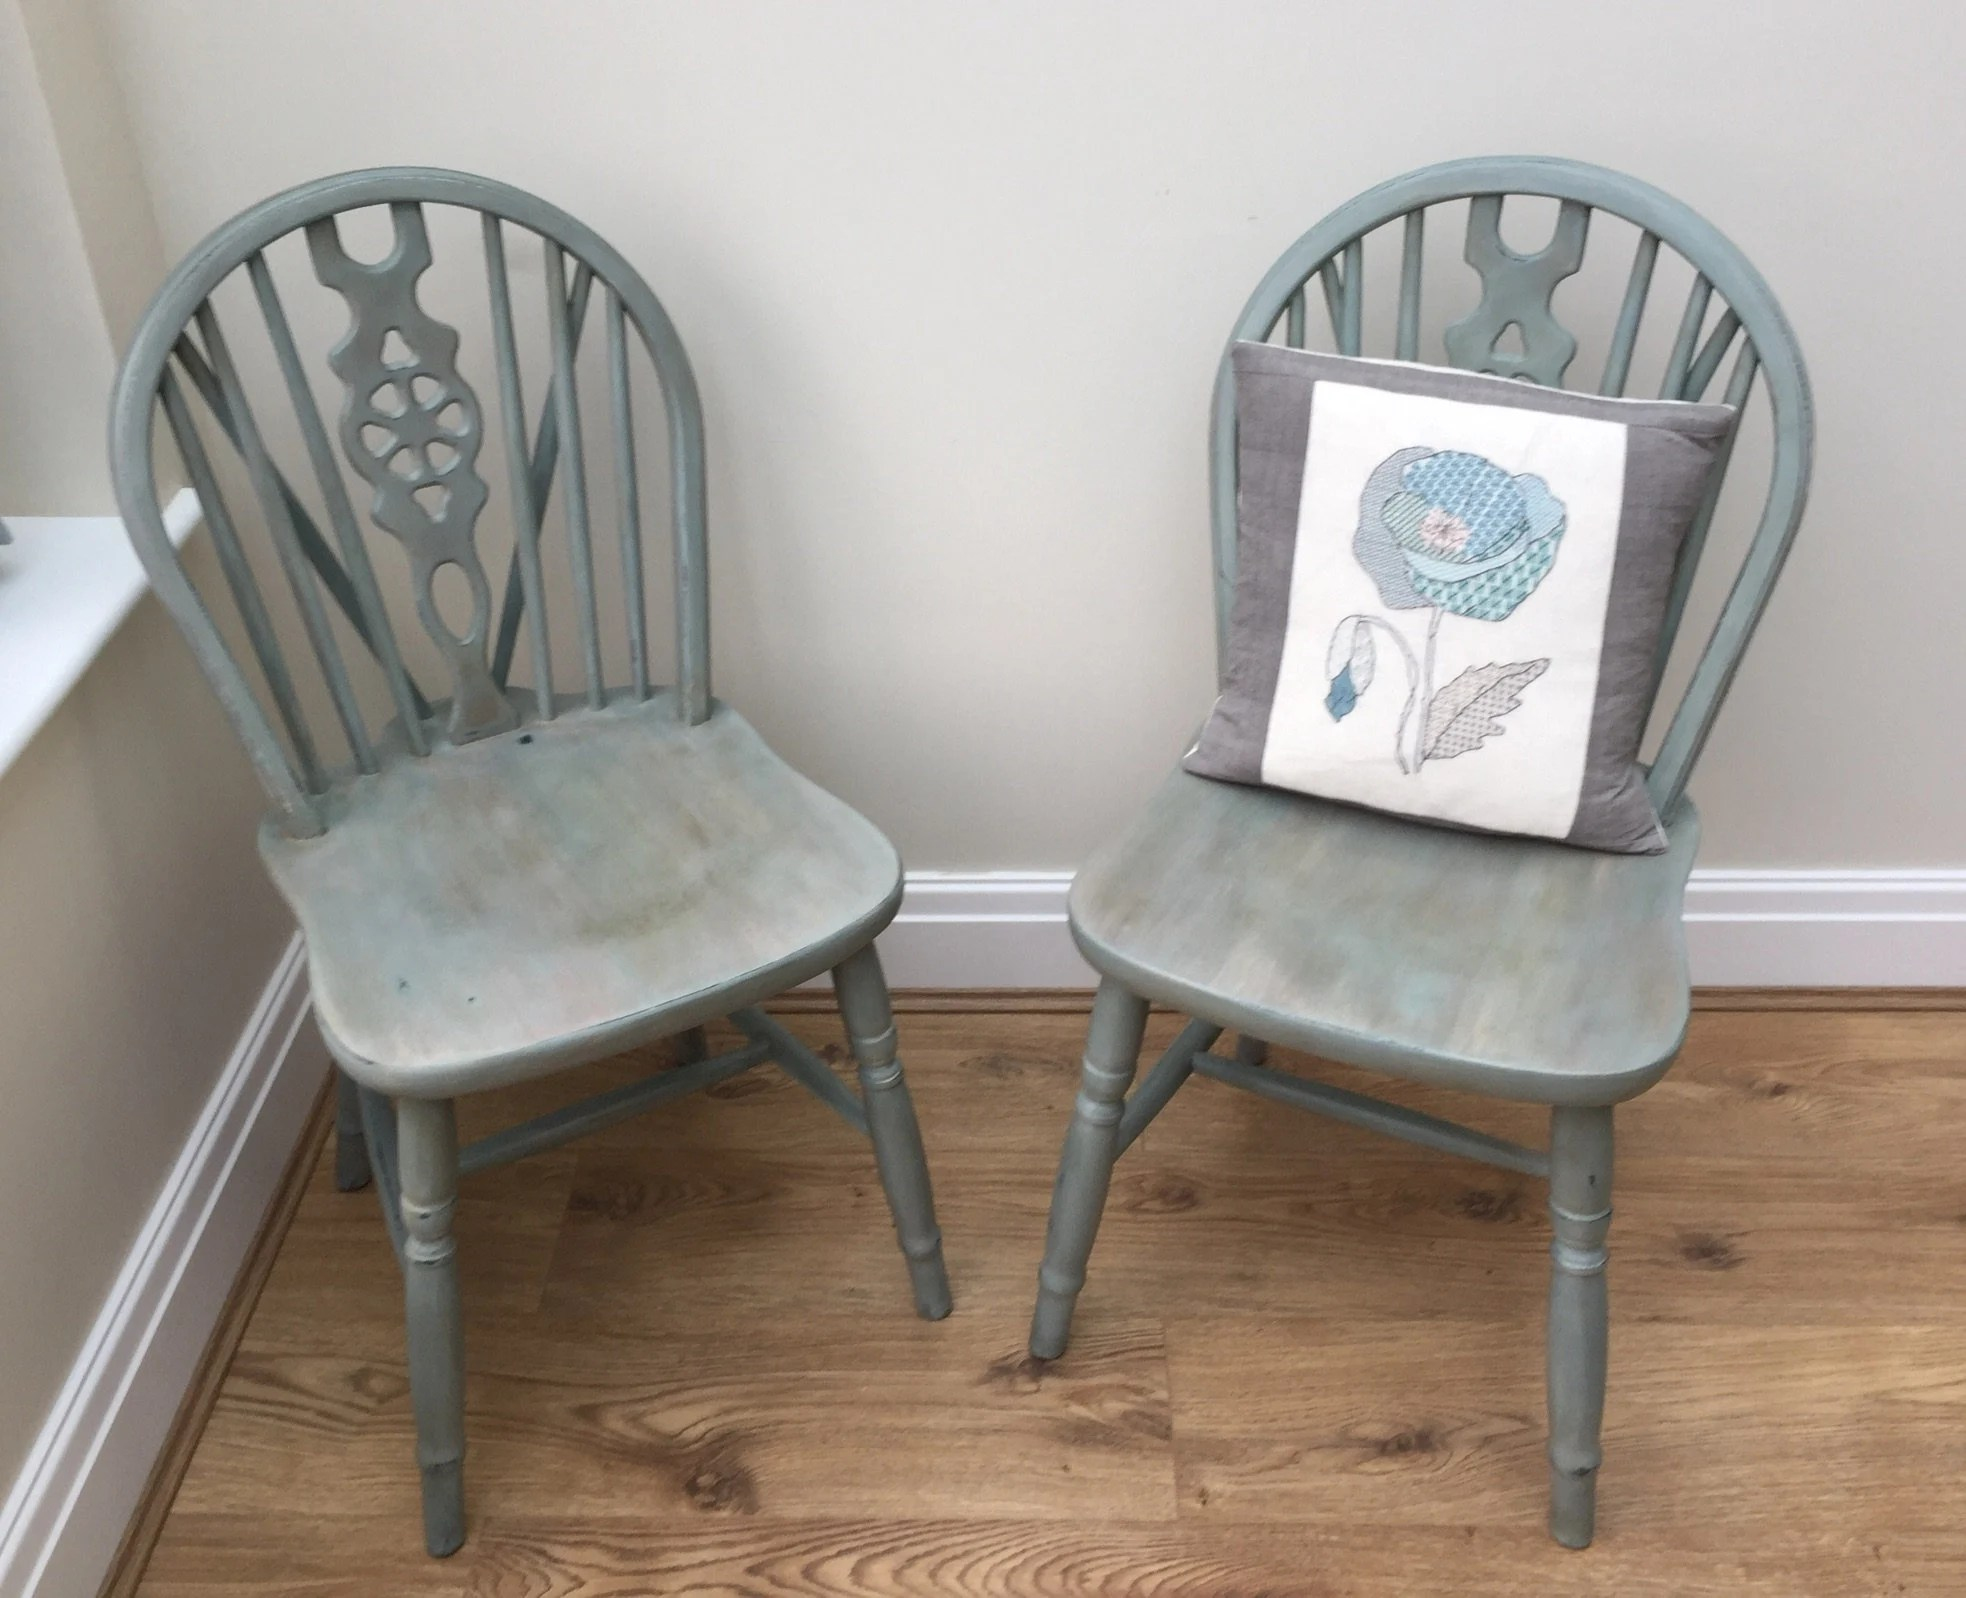 Refurbished Chairs Sold Sold Sold Pair Of Windsor Wheel Back Chairs Refurbished With Annie Sloan Chalk Paint Wax